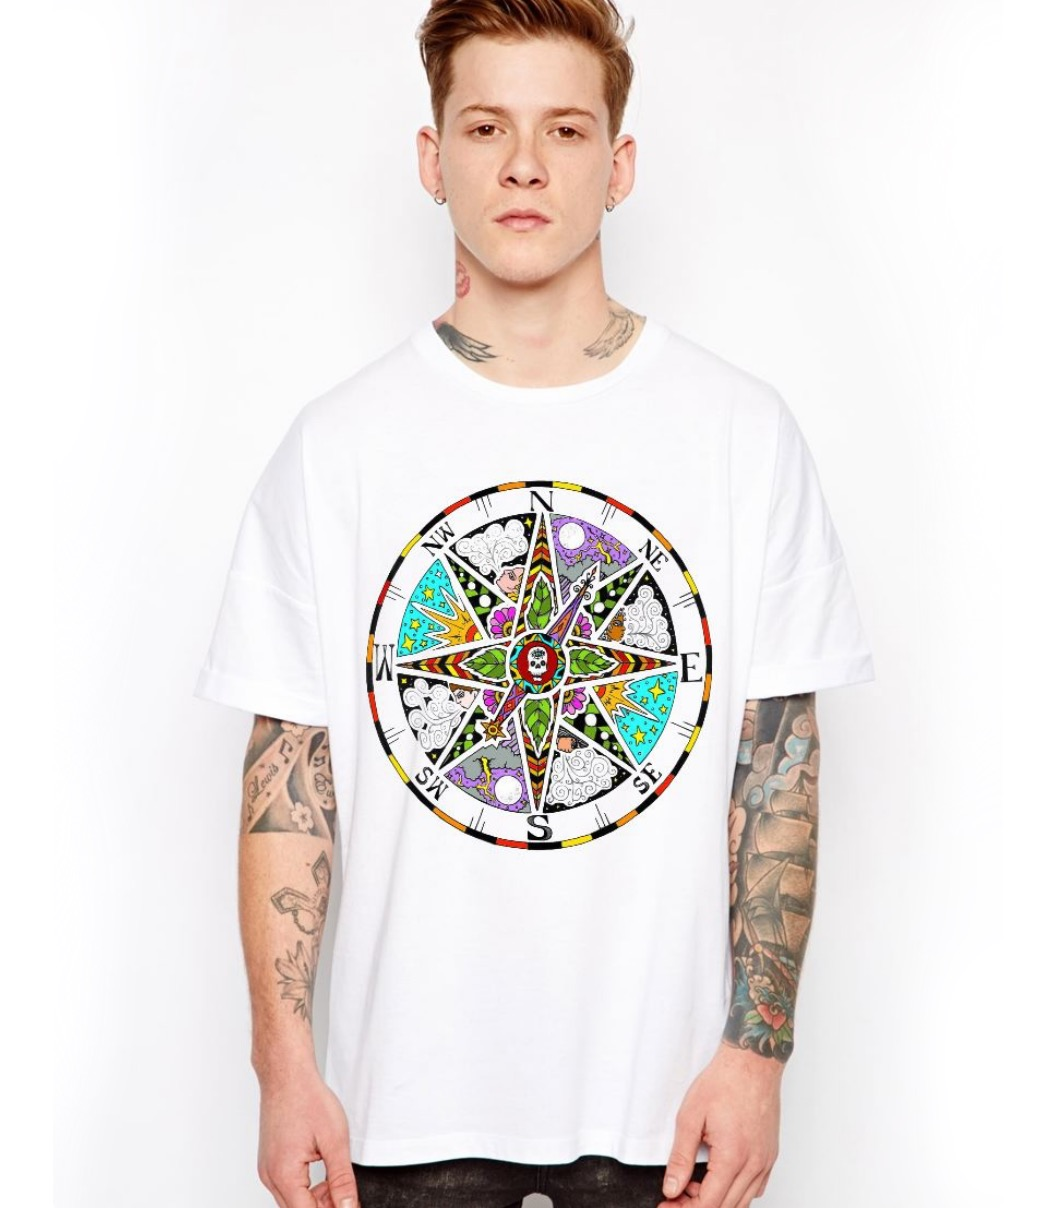 15-Off-White-Women-s-Black-Embroidered-T-Shirt-1 copy 39.jpg